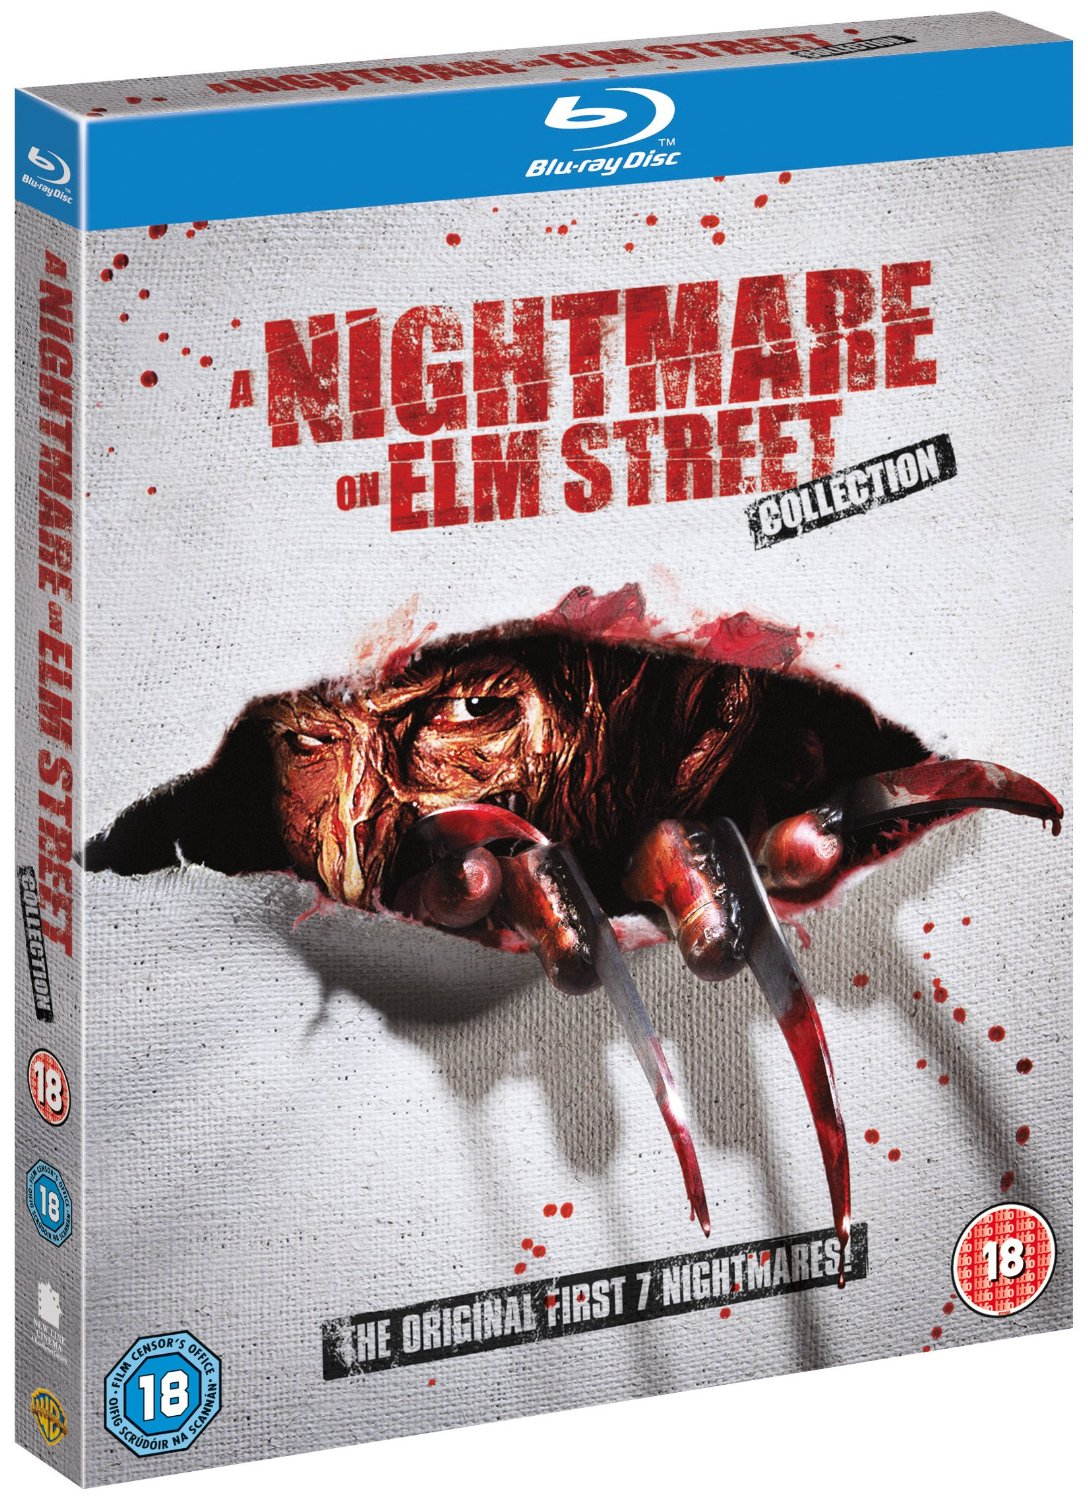 A Nightmare On Elm Street packshot